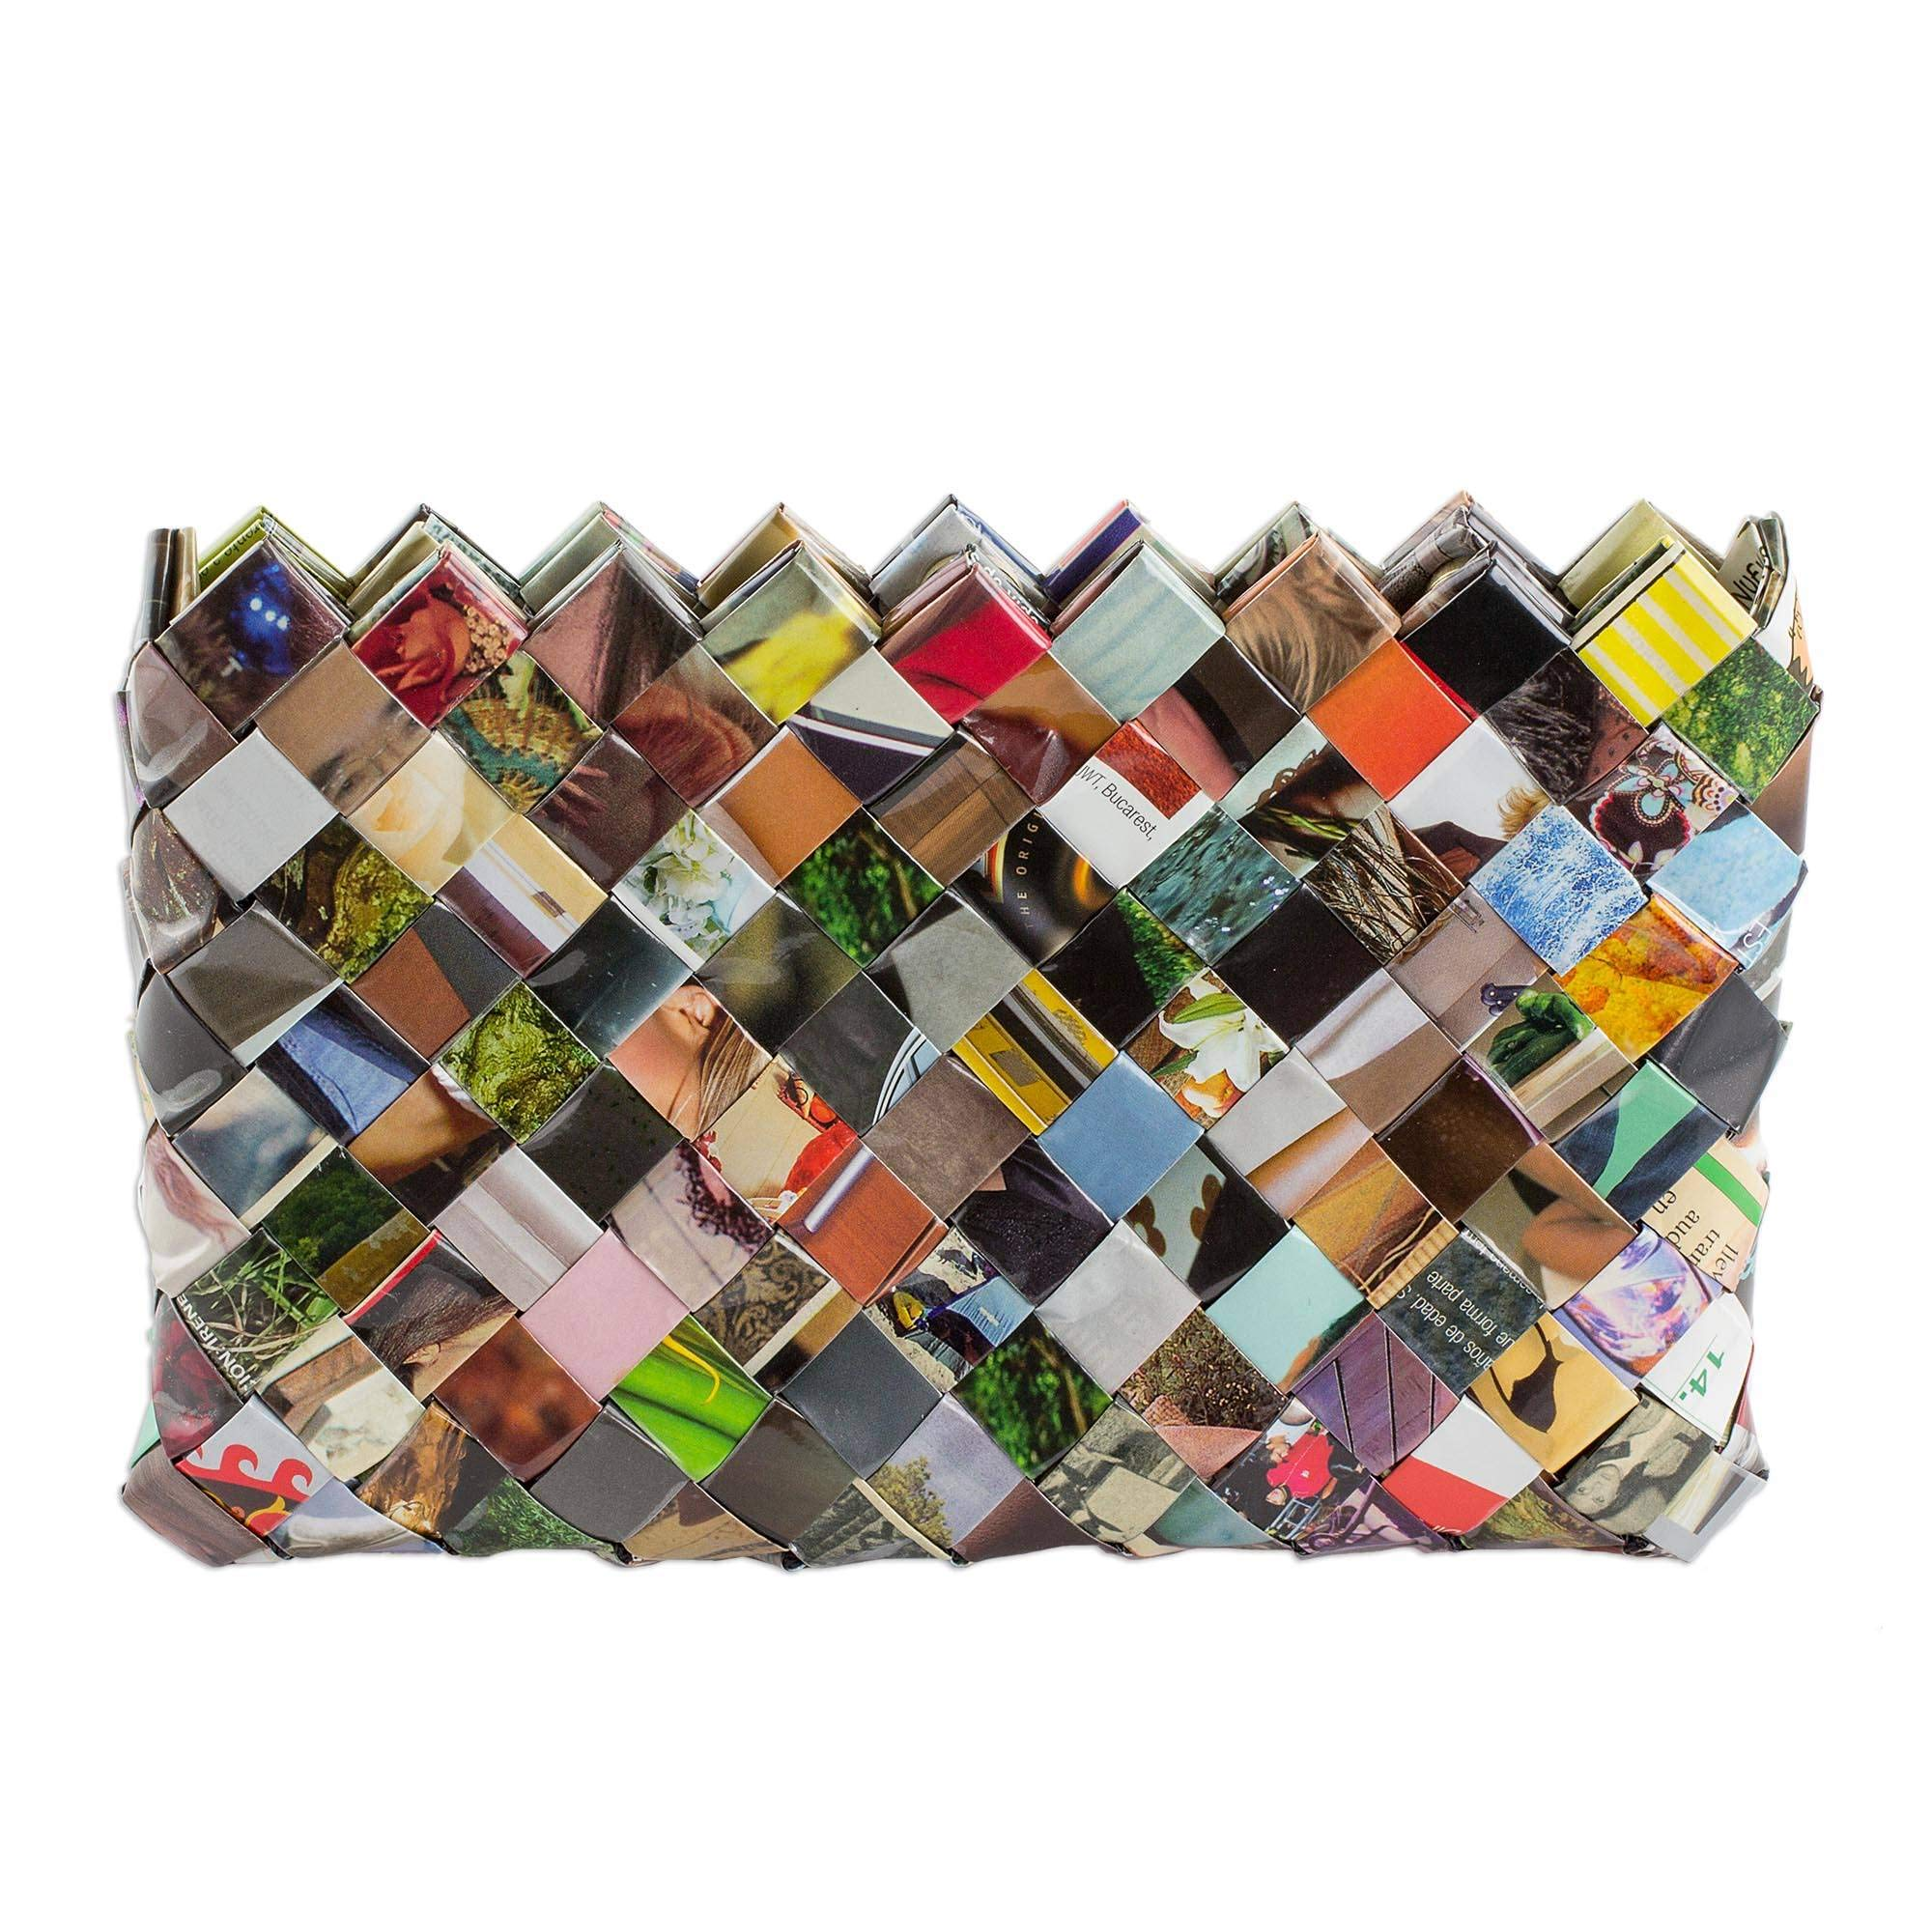 NOVICA Multicolor Recycled Magazine Clutch Bag, Fashion Fiesta' (6 inch) by NOVICA